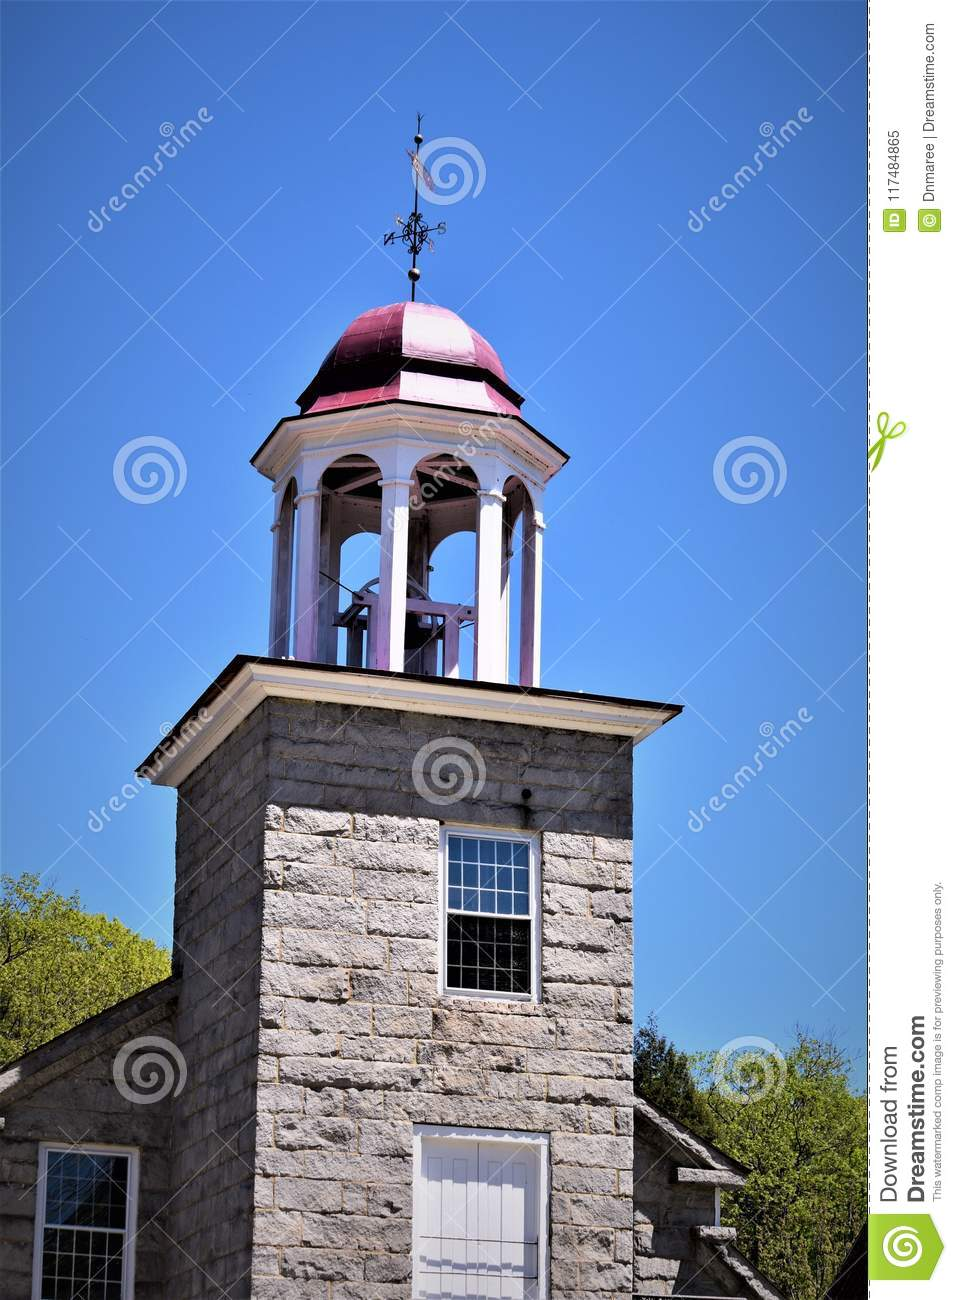 Closeup of 19th century woolen mill cupola. Harrisville, Cheshire County, New Hampshire, United States